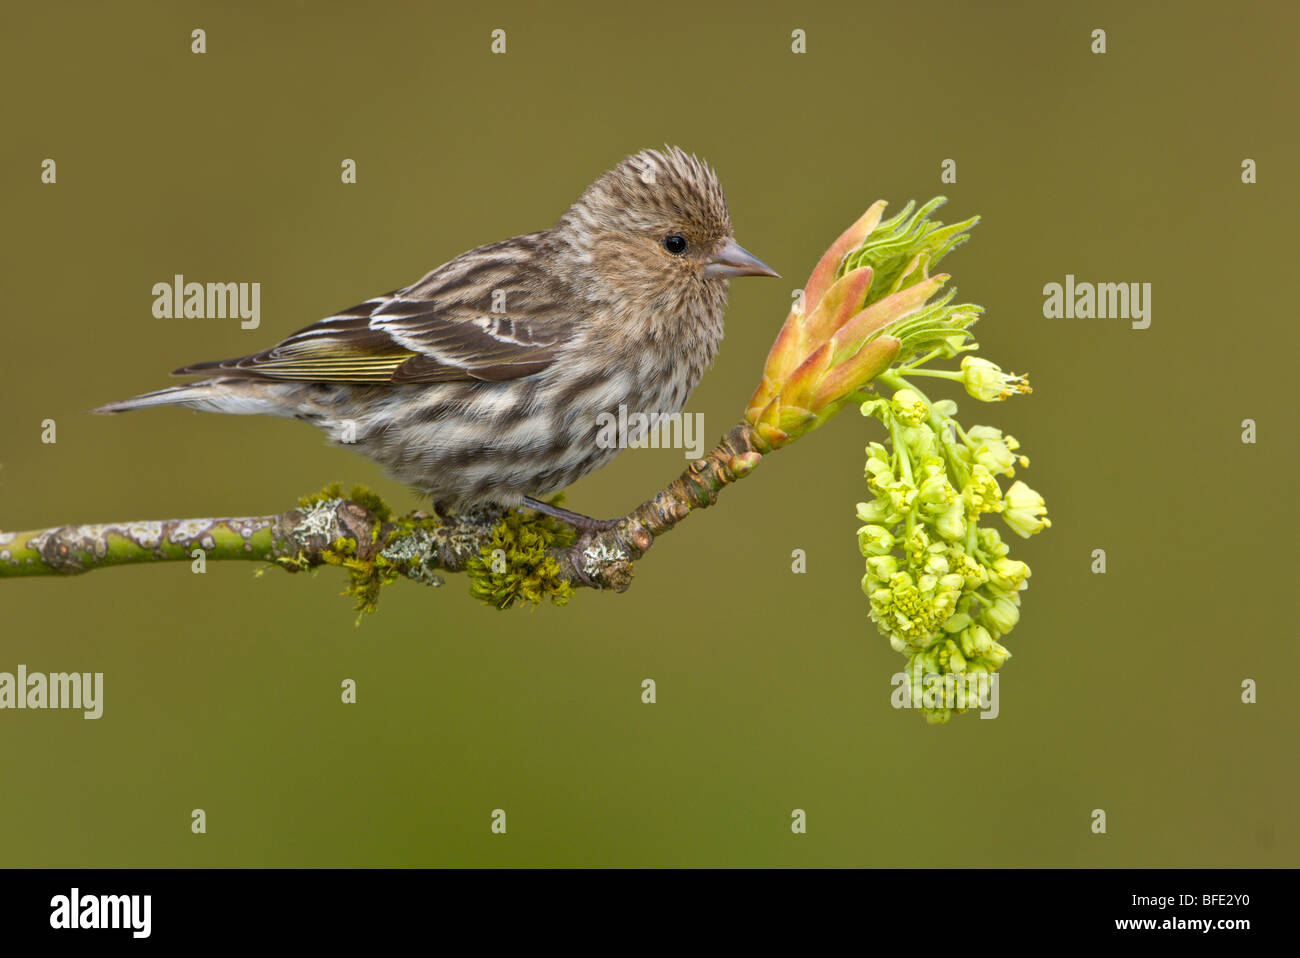 Pine siskin (Carduelis pinus) perched on a budding maple tree branch, Victoria, Vancouver Island, British Columbia, - Stock Image